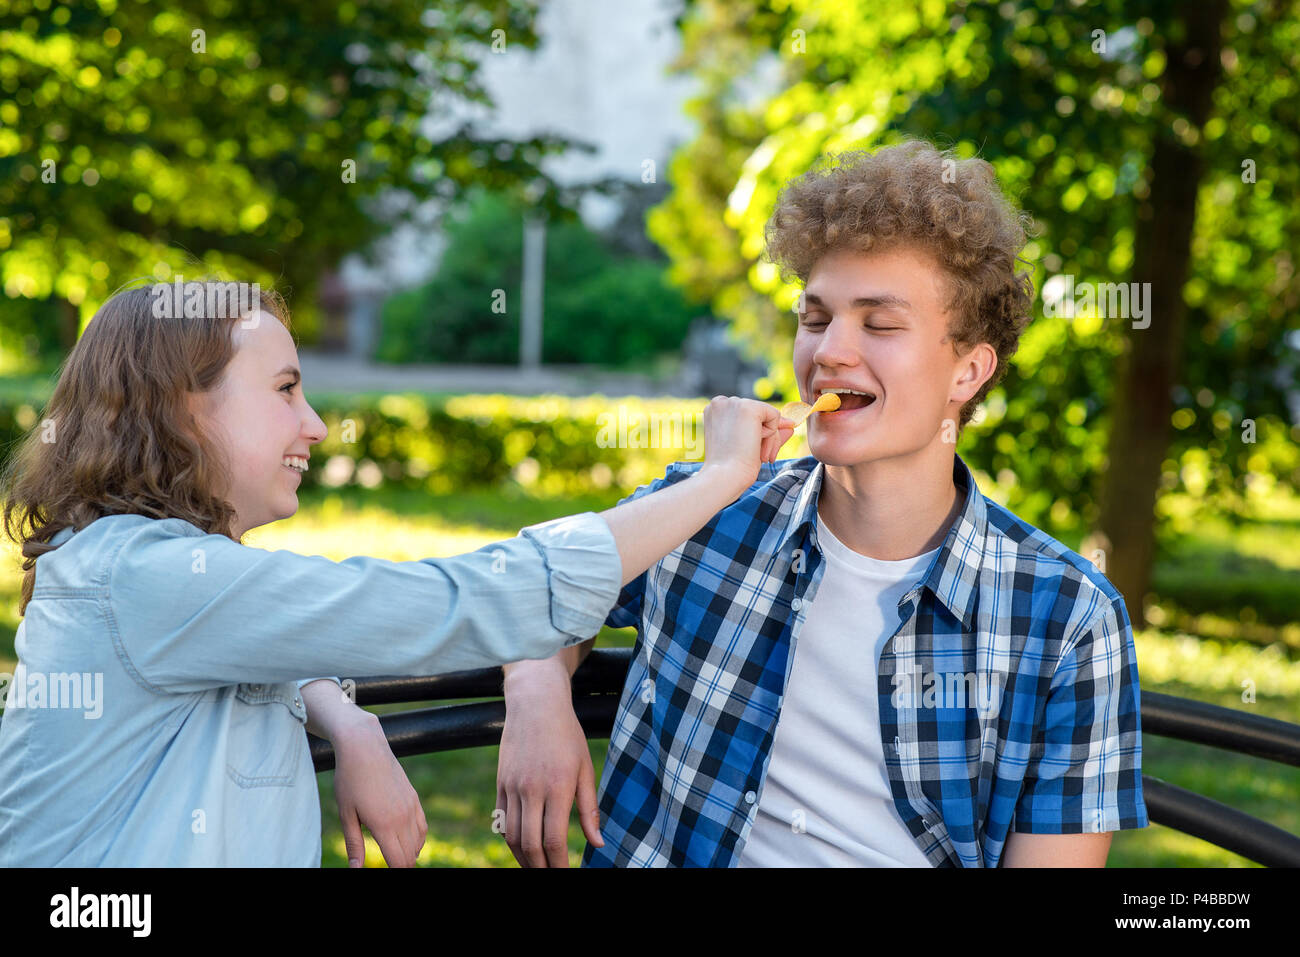 Young couple in love. Summer in park sit on a bench. A girl is feeding a guy with food. The guy smiles happily. The concept of a happy relationship. Stock Photo